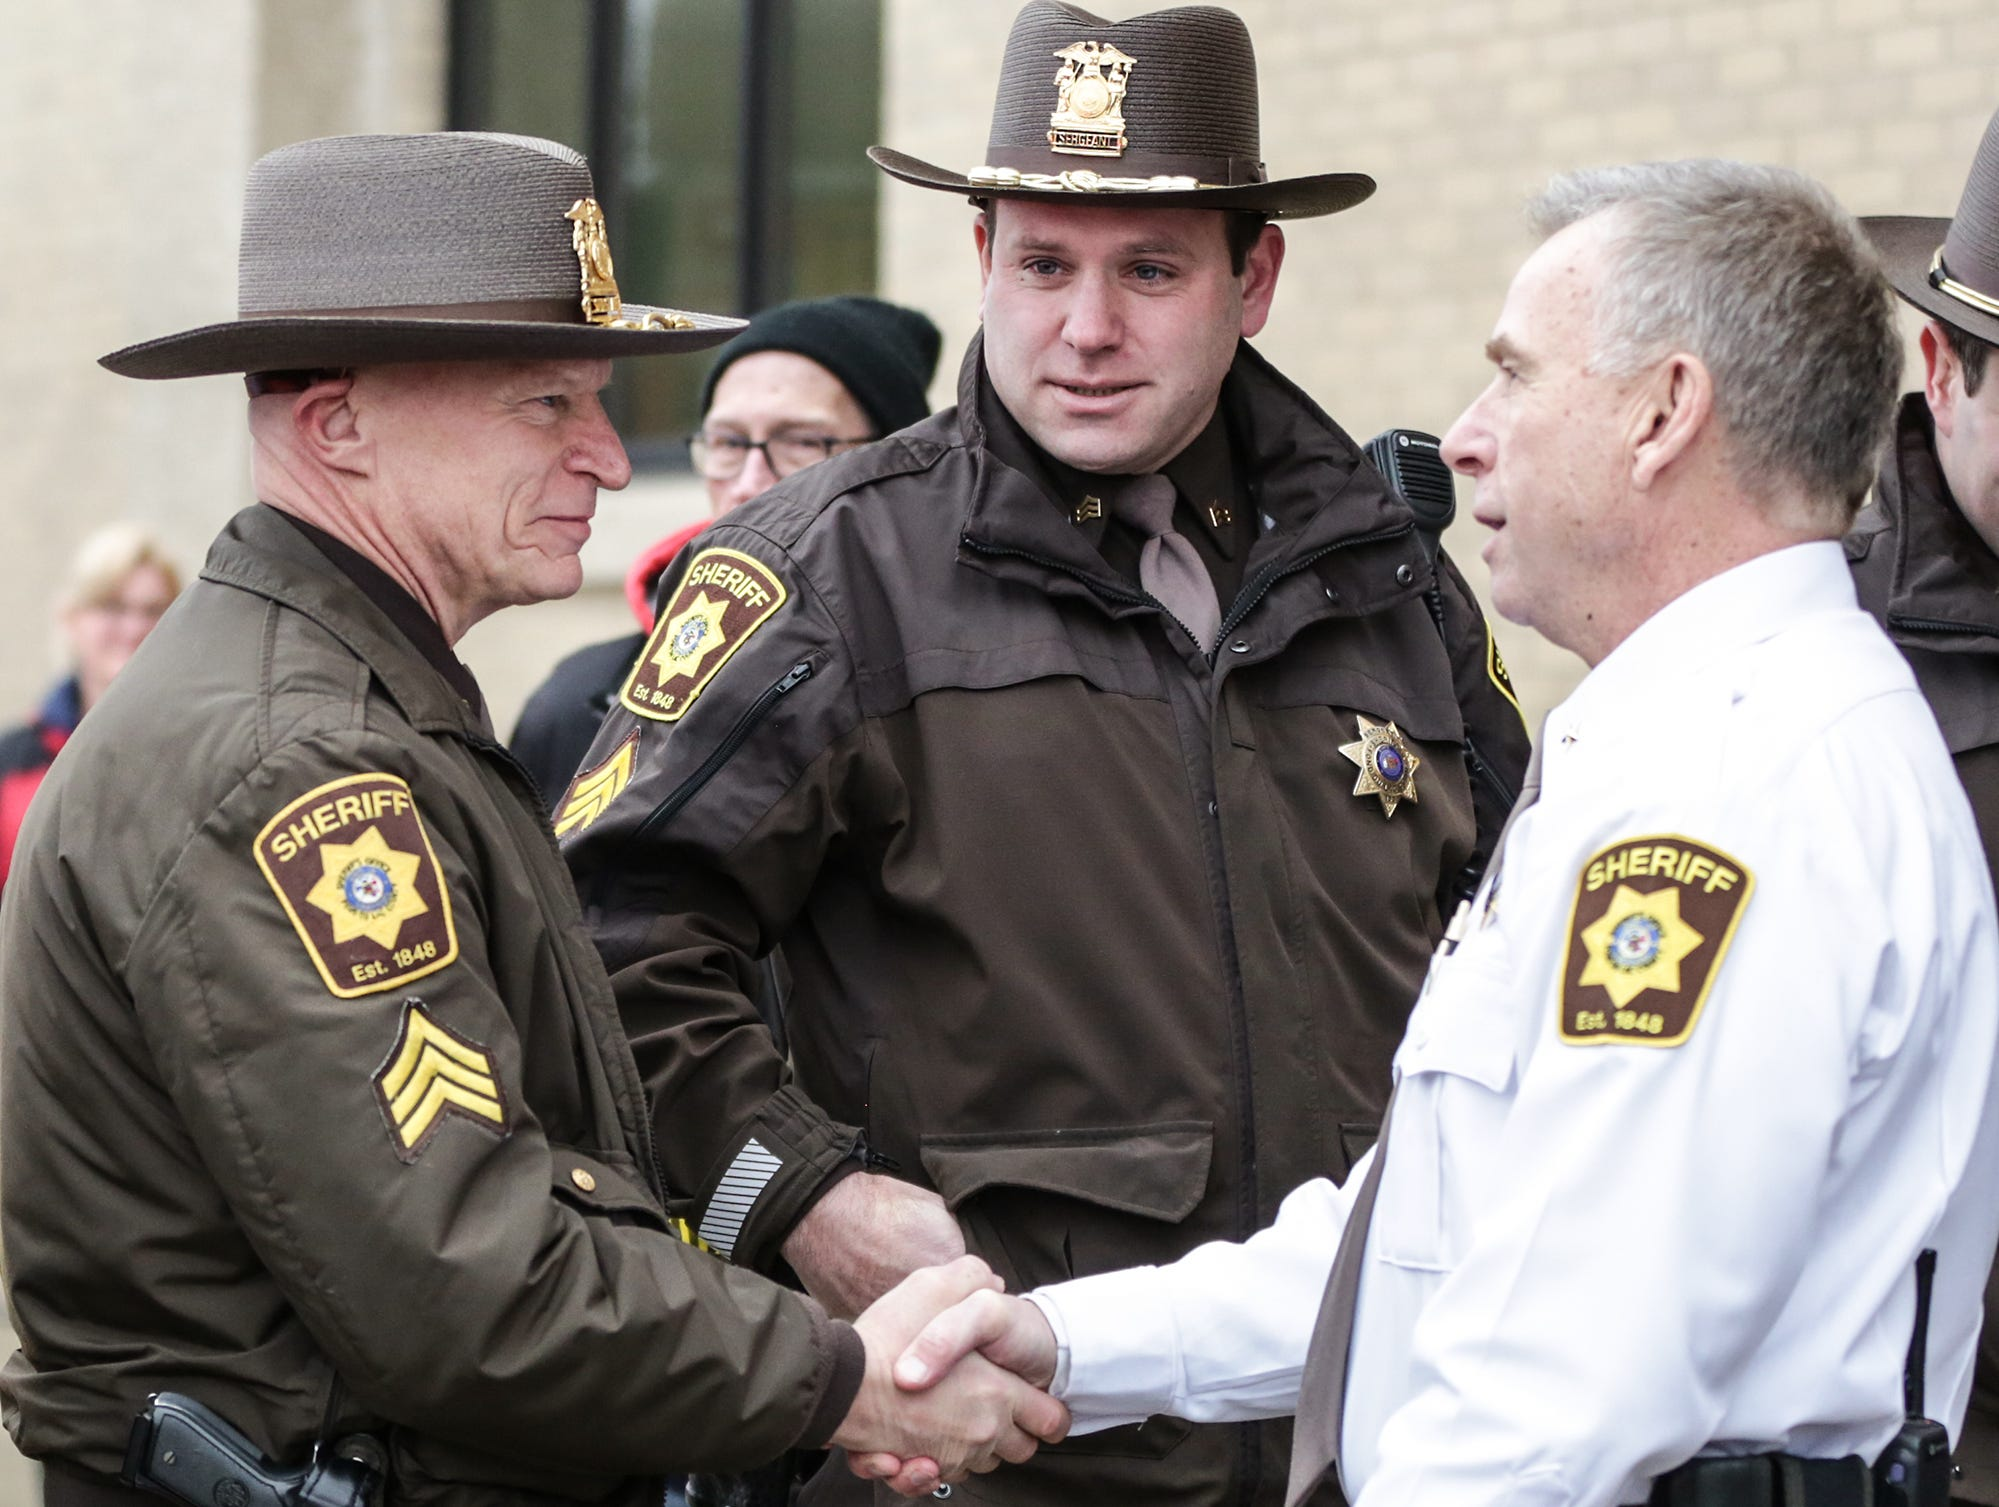 Fond du Lac County Sheriff's Office Sergeant Paul Rottscholl shakes the hand of Fond du Lac County Sheriff Mick Fink as Fink does the ceremonial retirement ramp walk Monday, January, 7, 2019 at the sheriff's office building in Fond du Lac. Fink retired from the position of Fond du Lac County Sheriff after serving for 12 years. Submitted by Roxanne Abler/USA TODAY NETWORK-Wisconsin